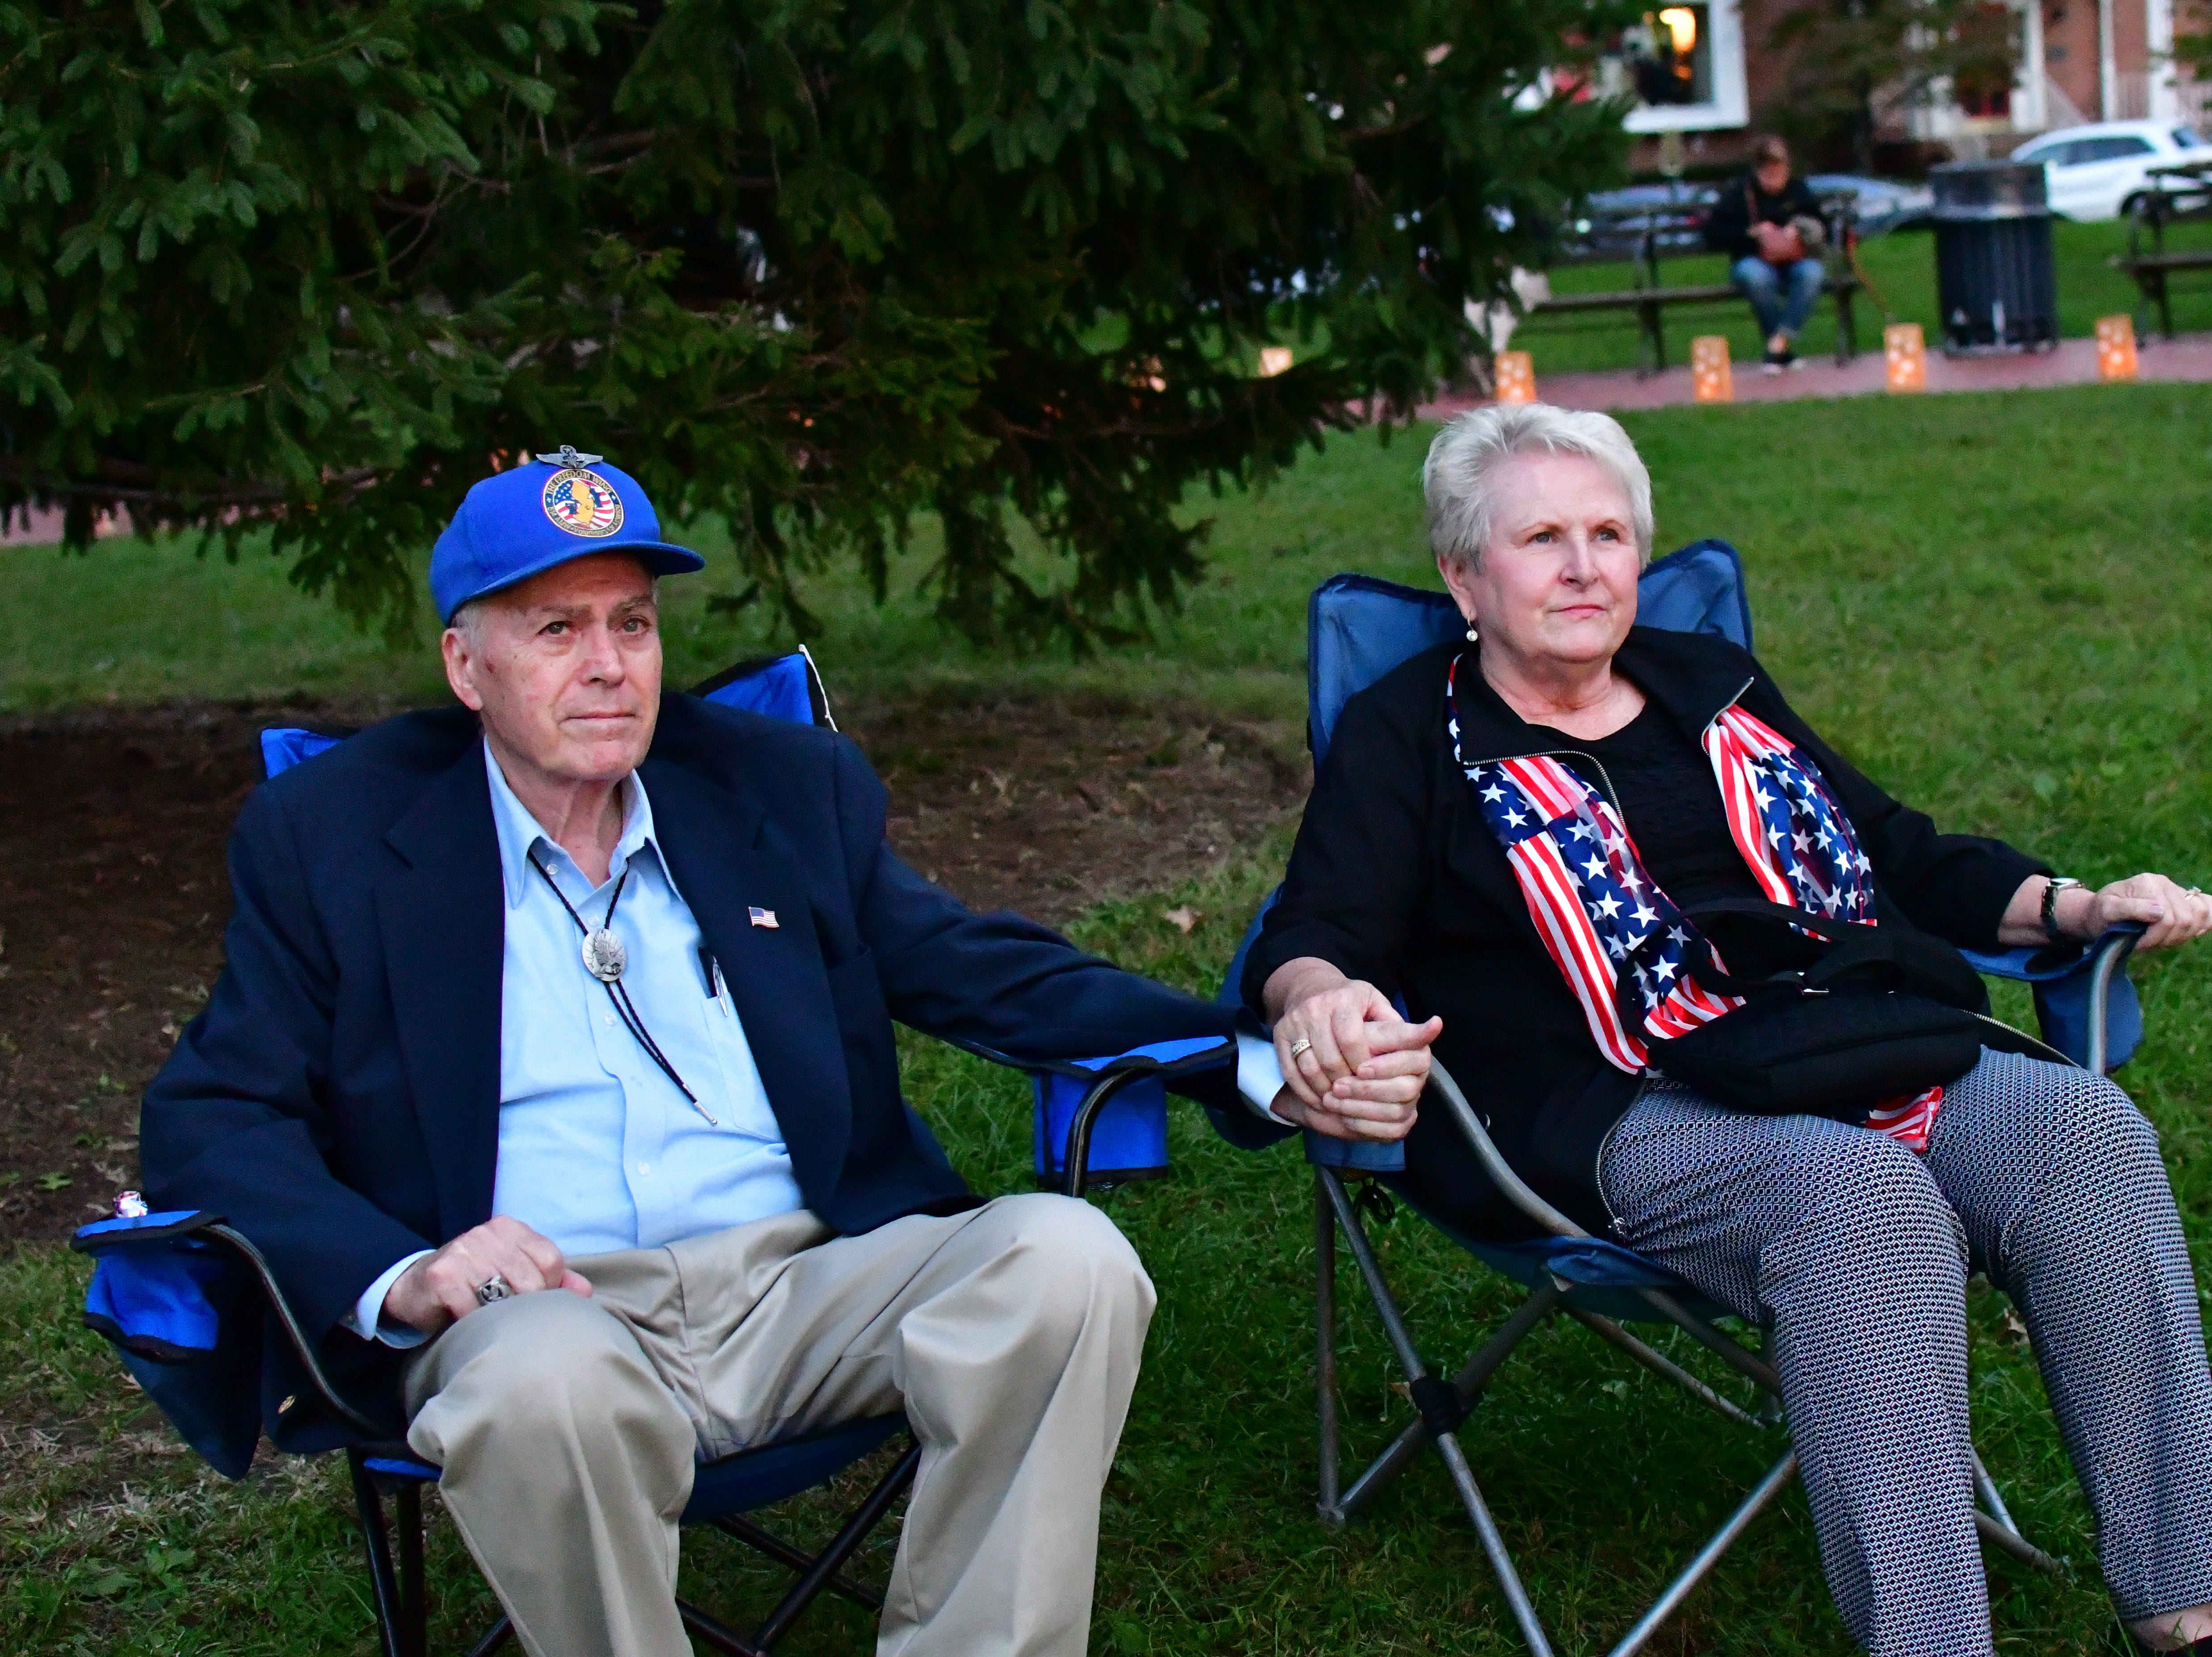 Margaret Gensch, left, and Al Gensch, right. The Gold Star Mother's Day Committee sponsored its eighth annual event commemorating Gold Star Mother's Day on Sept. 30, at Van Neste Park, Ridgewood. After a short ceremony, hundreds of luminaries were lit to honor Gold Star Mothers (moms who had lost sons and daughters to the war) and their families.